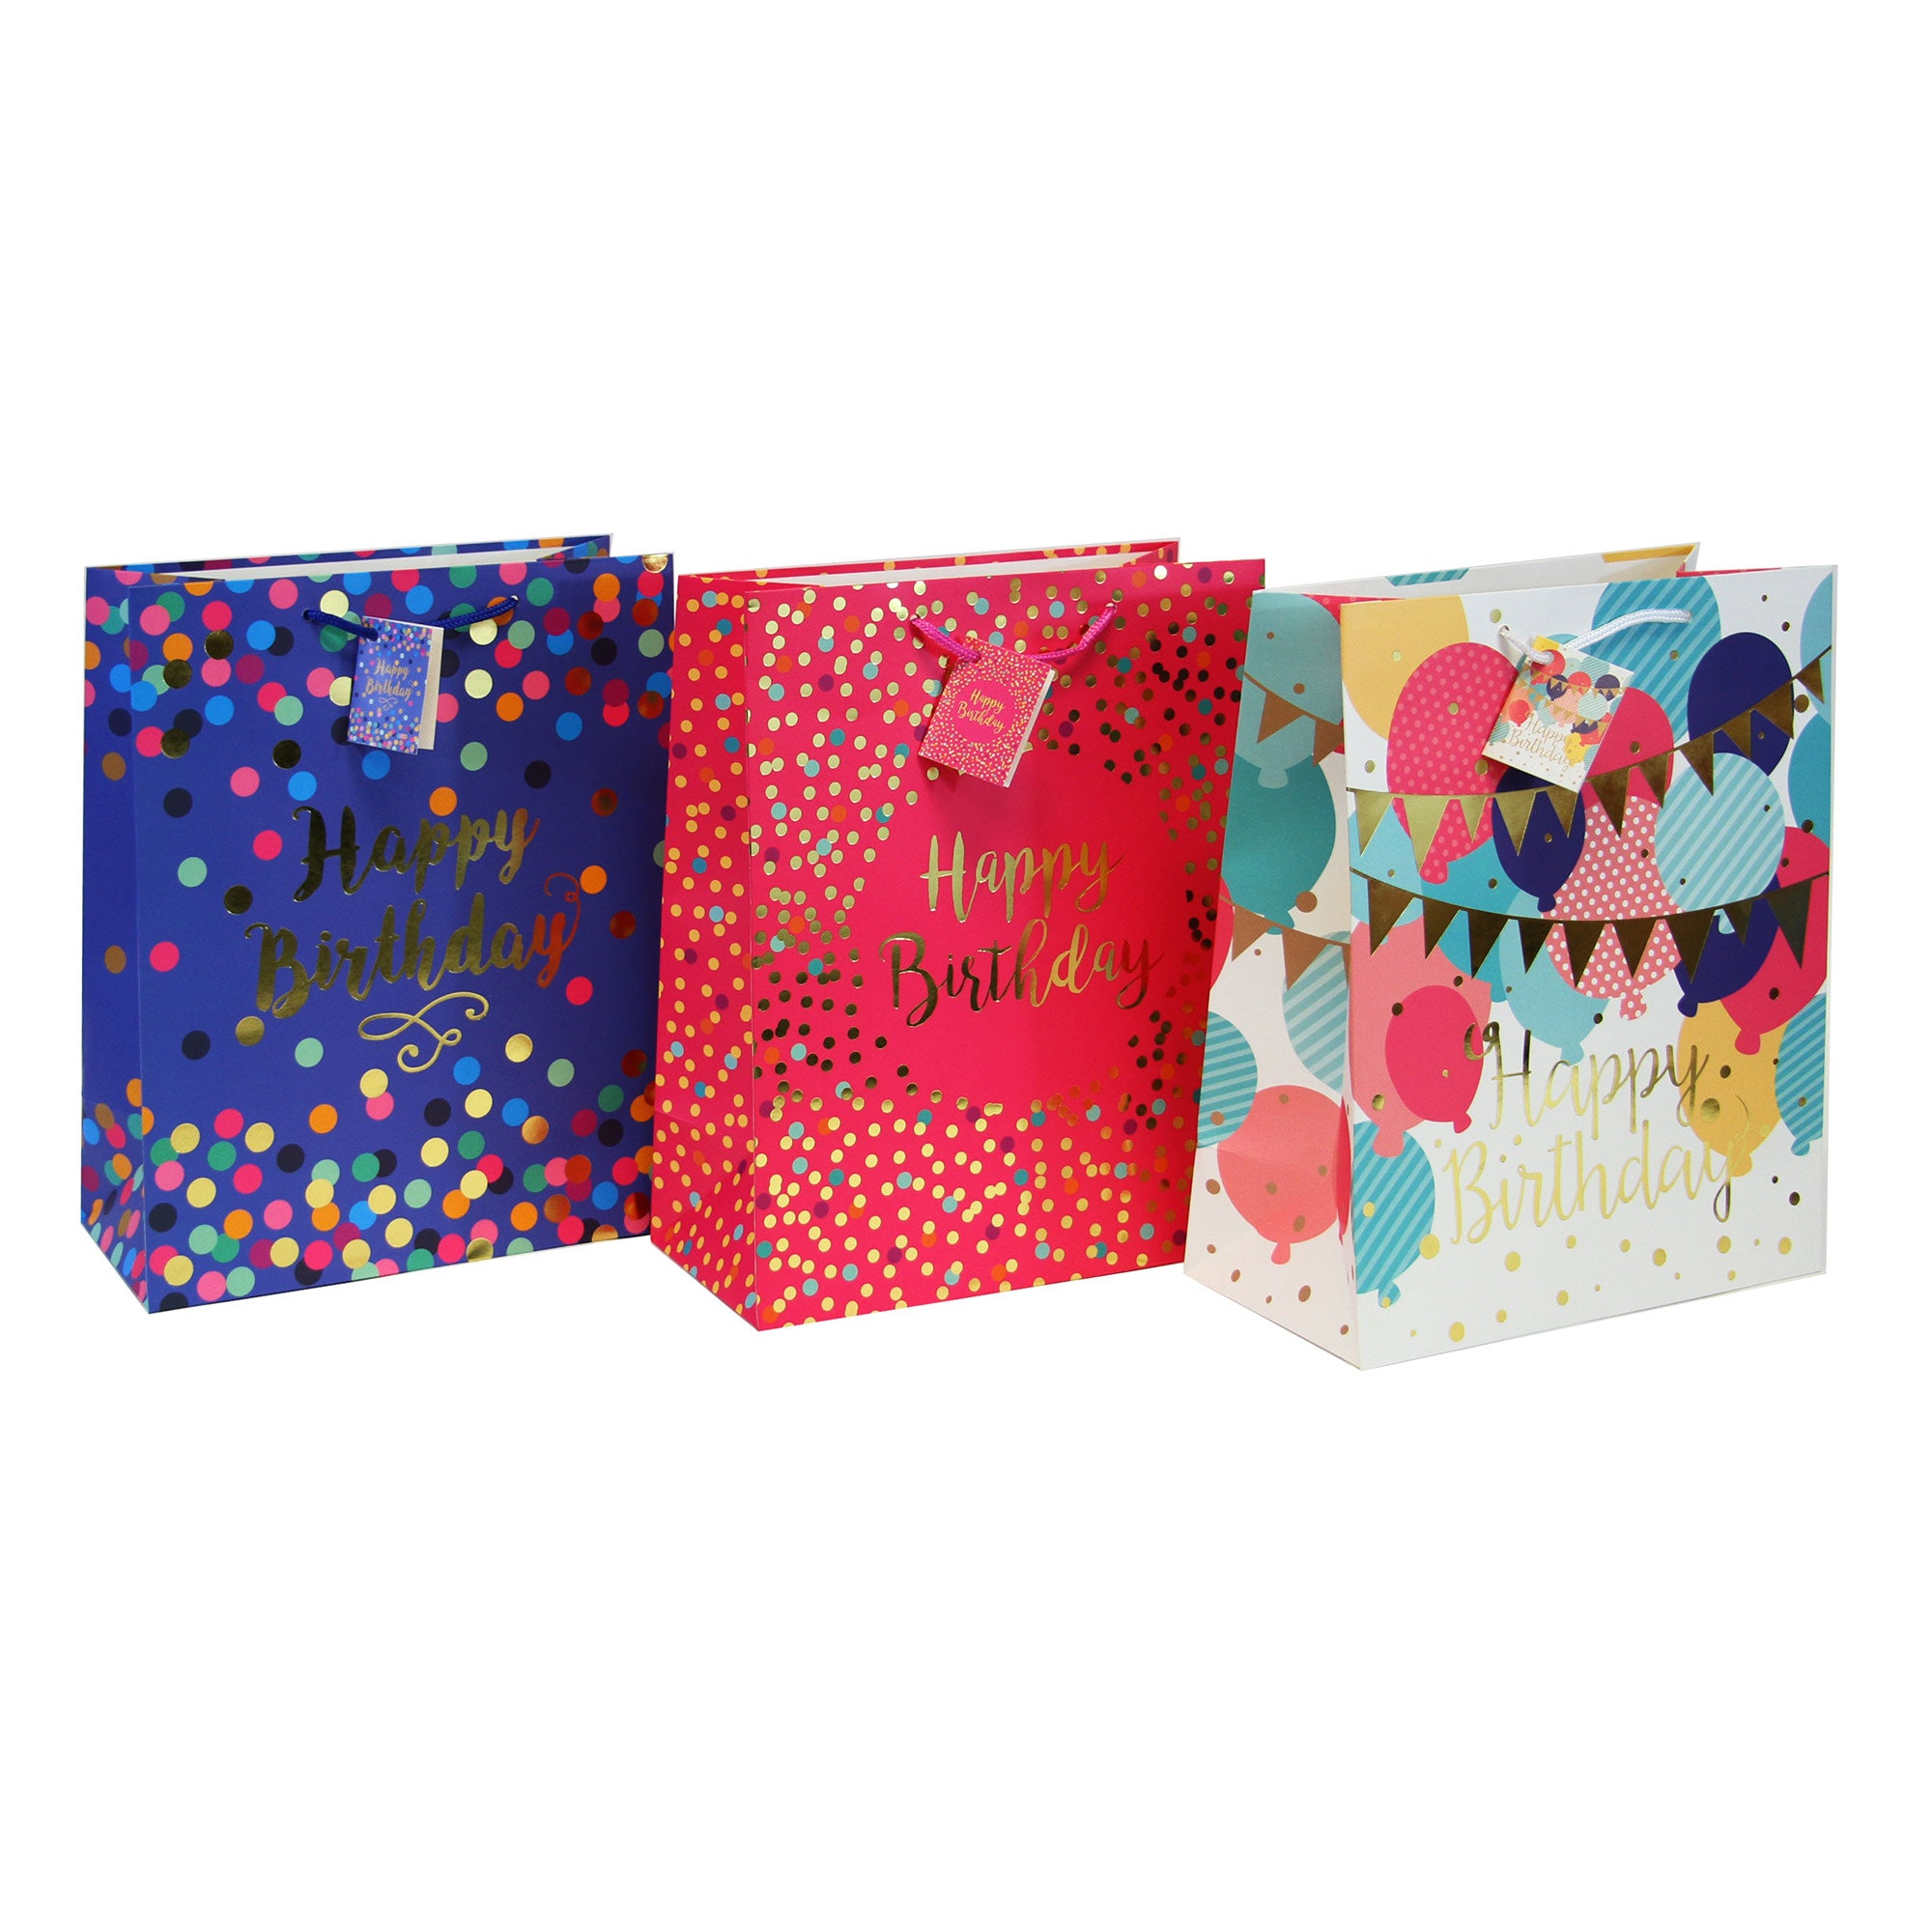 SURPRISE! LARGE BIRTHDAY GIFT BAGS